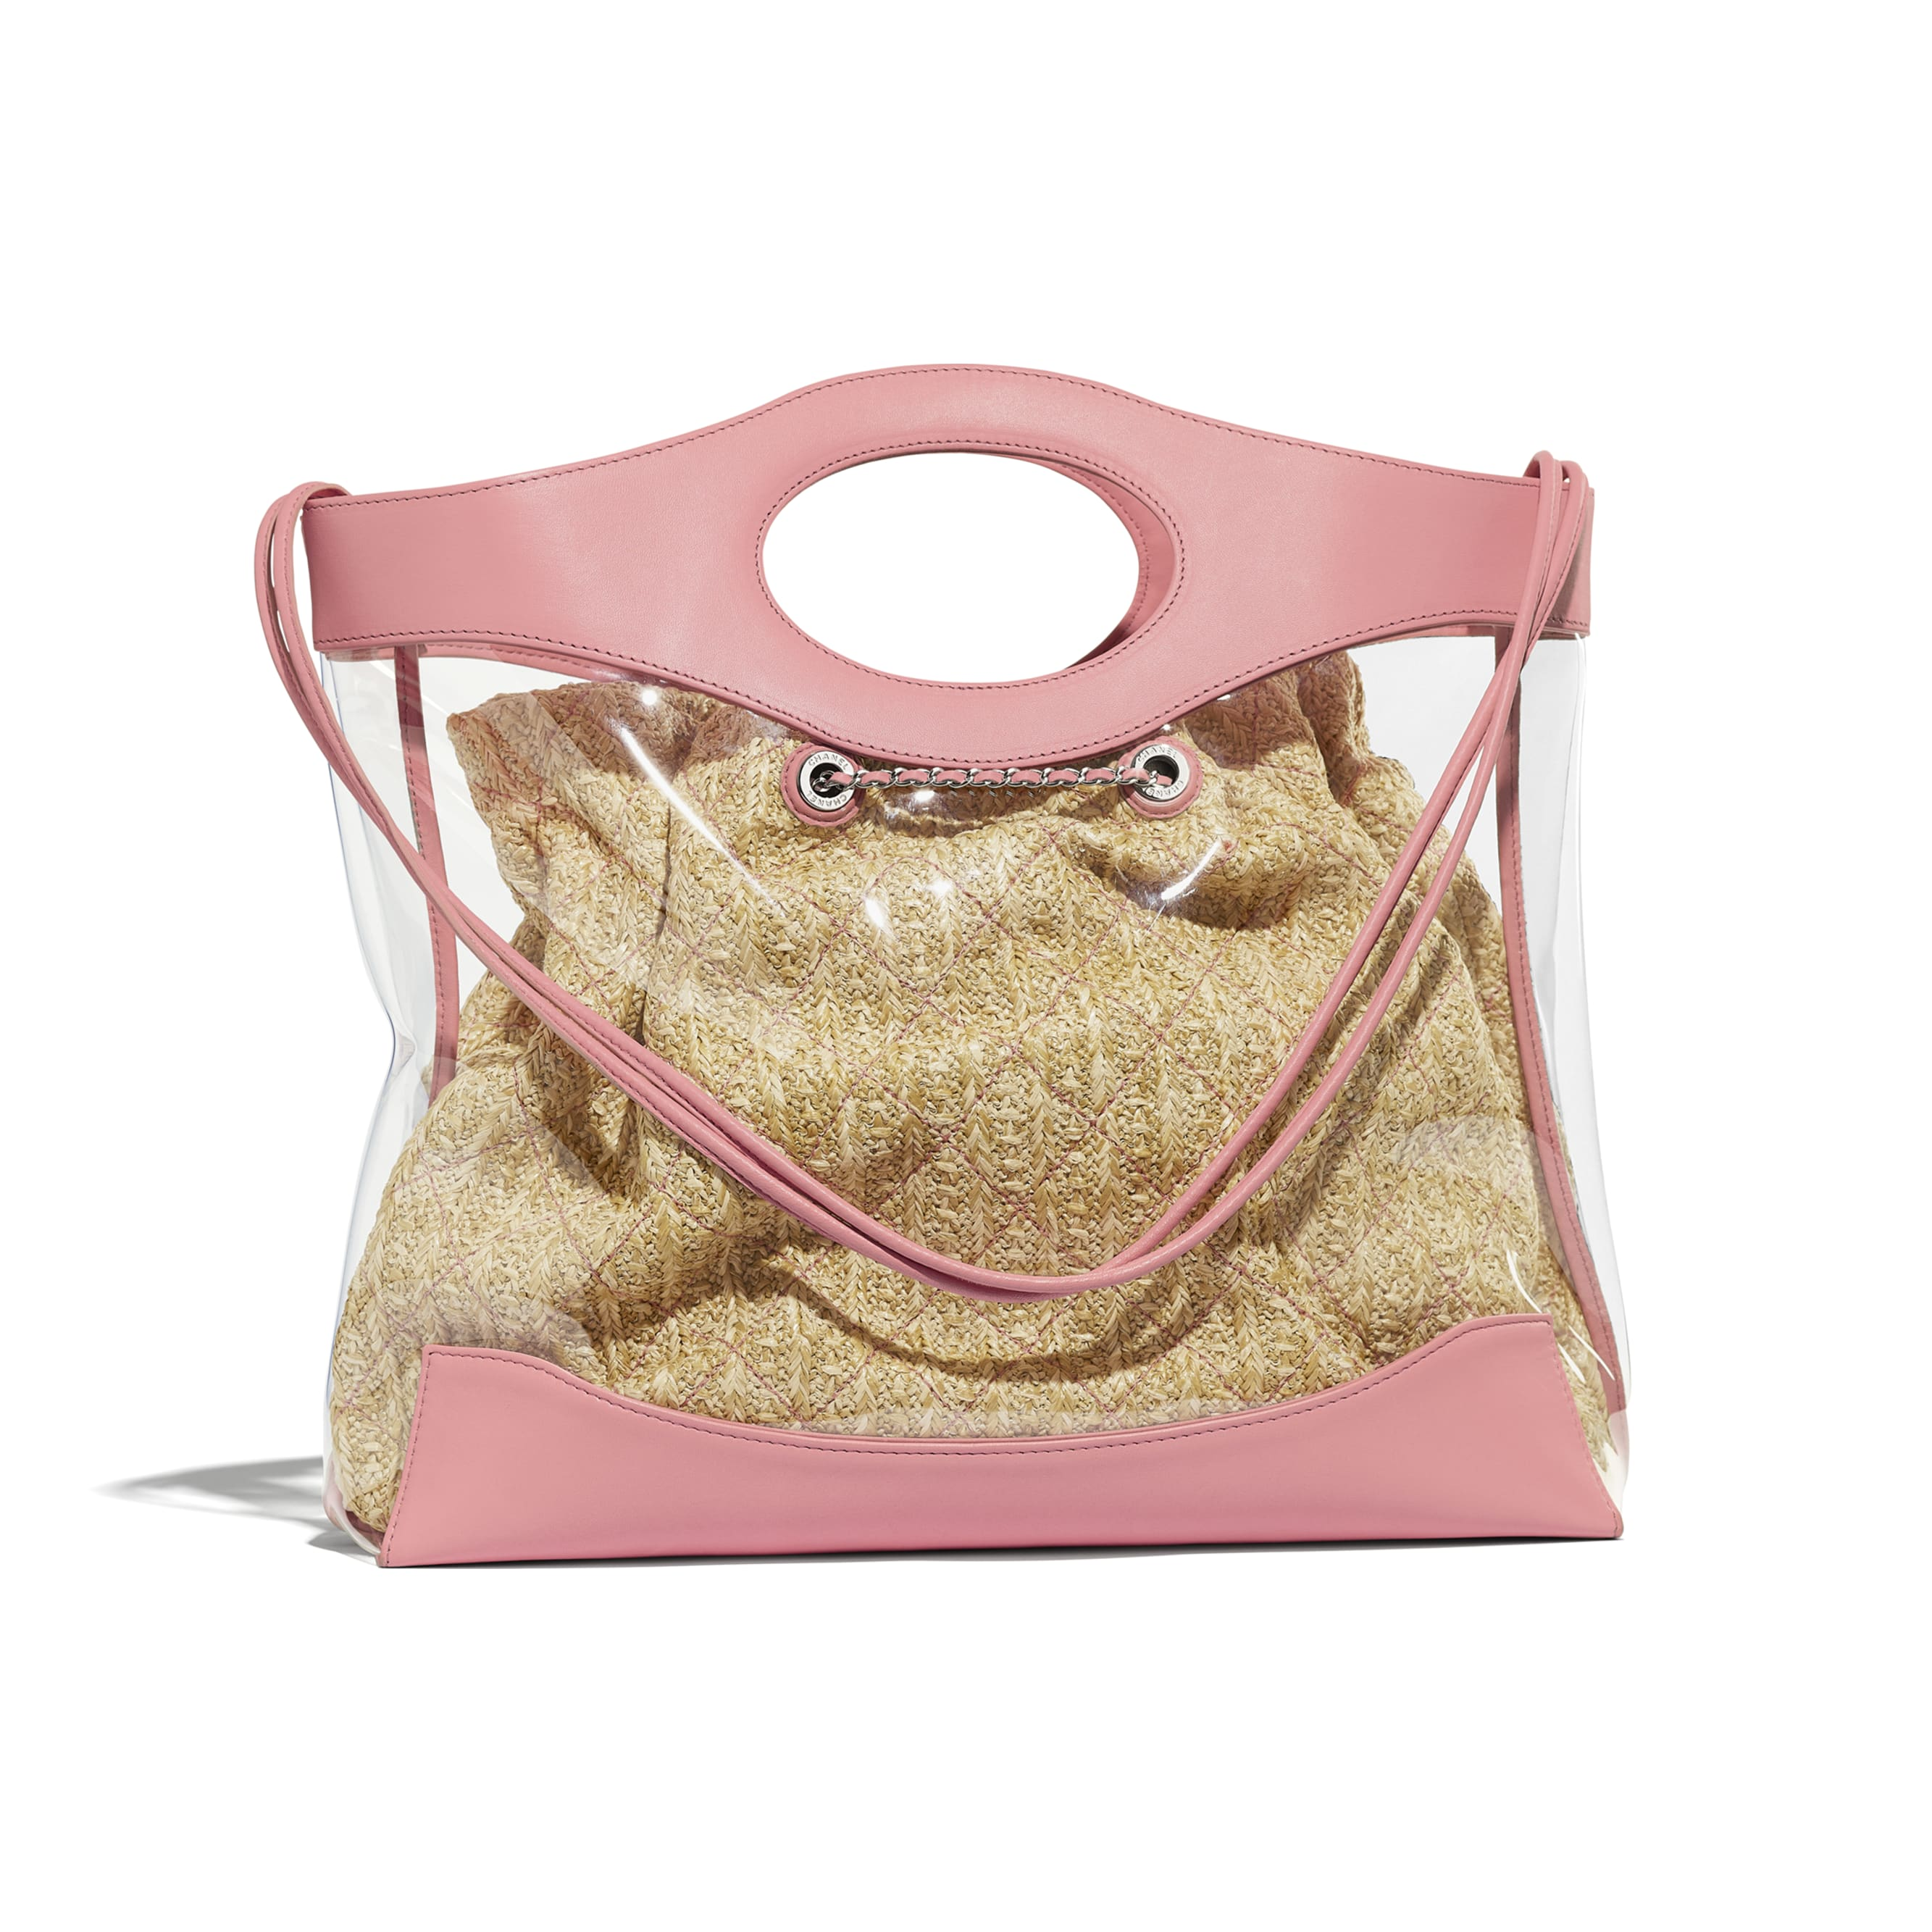 CHANEL 31 Shopping Bag - Pink - PVC, Calfskin & Silver-Tone Metal - Alternative view - see standard sized version